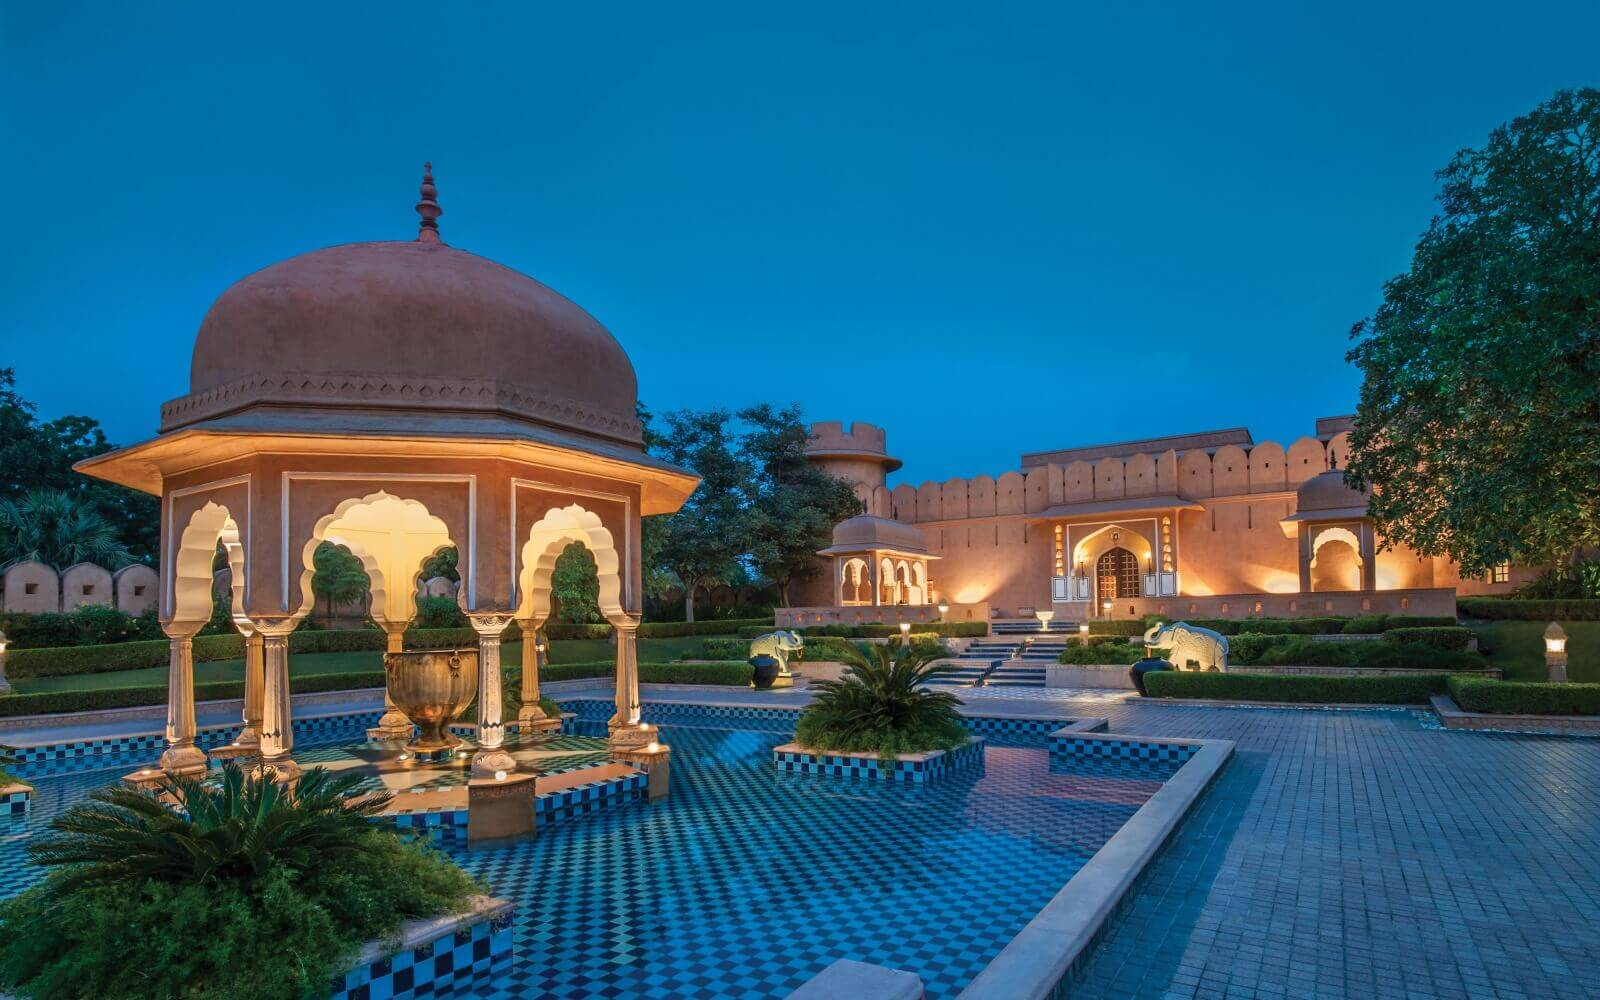 Insiders Guide – Things to do in Jaipur